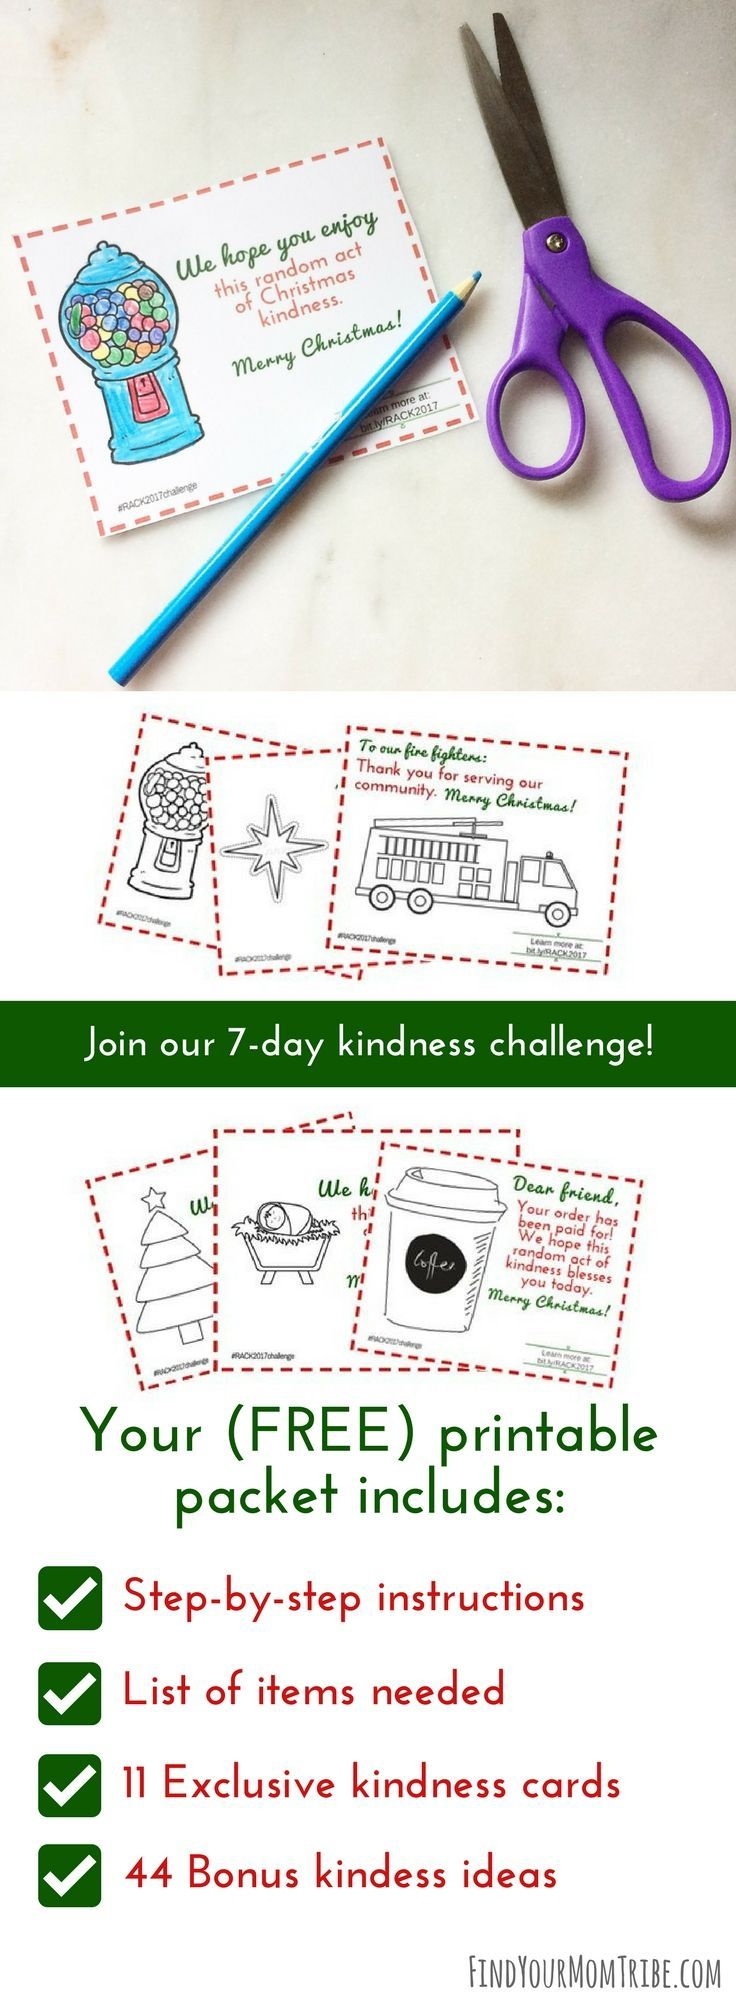 I cannot WAIT to do these Random Acts of Kindness activities with my kids! Sign up to get your free Random Acts of Christmas Kindness printable packet! SO fun! #Christmas #Christmasactivities #Christmasprintable #freeprintable #randomactsofkindness #randomactsofChristmaskindness #Christmasideas #Christmascraftsforkids #Christmascrafts #KeepChristinChristmas #TruemeaningofChristmas